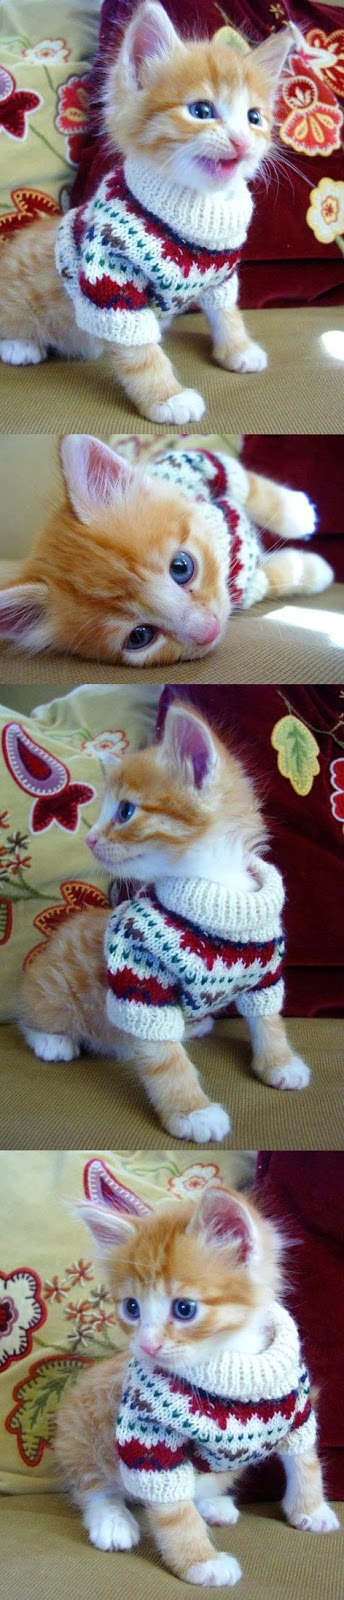 My husband needs this little creature! And the sweater.